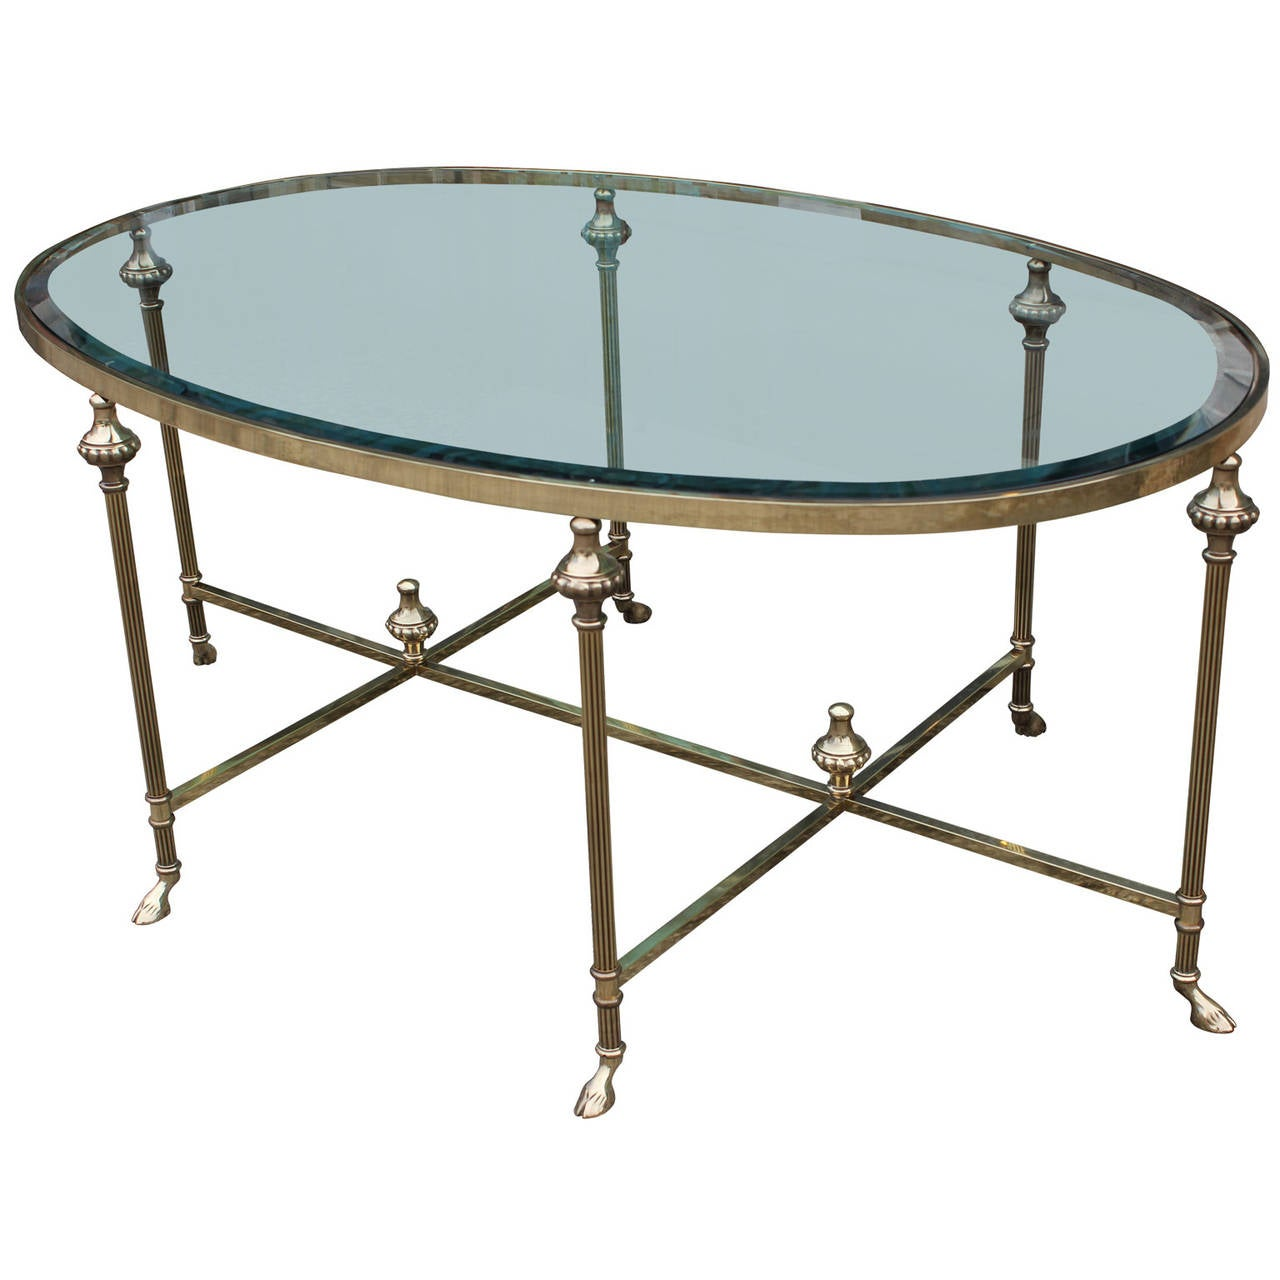 Large French Coffee Table: Large Scale French Hooved Brass Oval Cocktail Table At 1stdibs